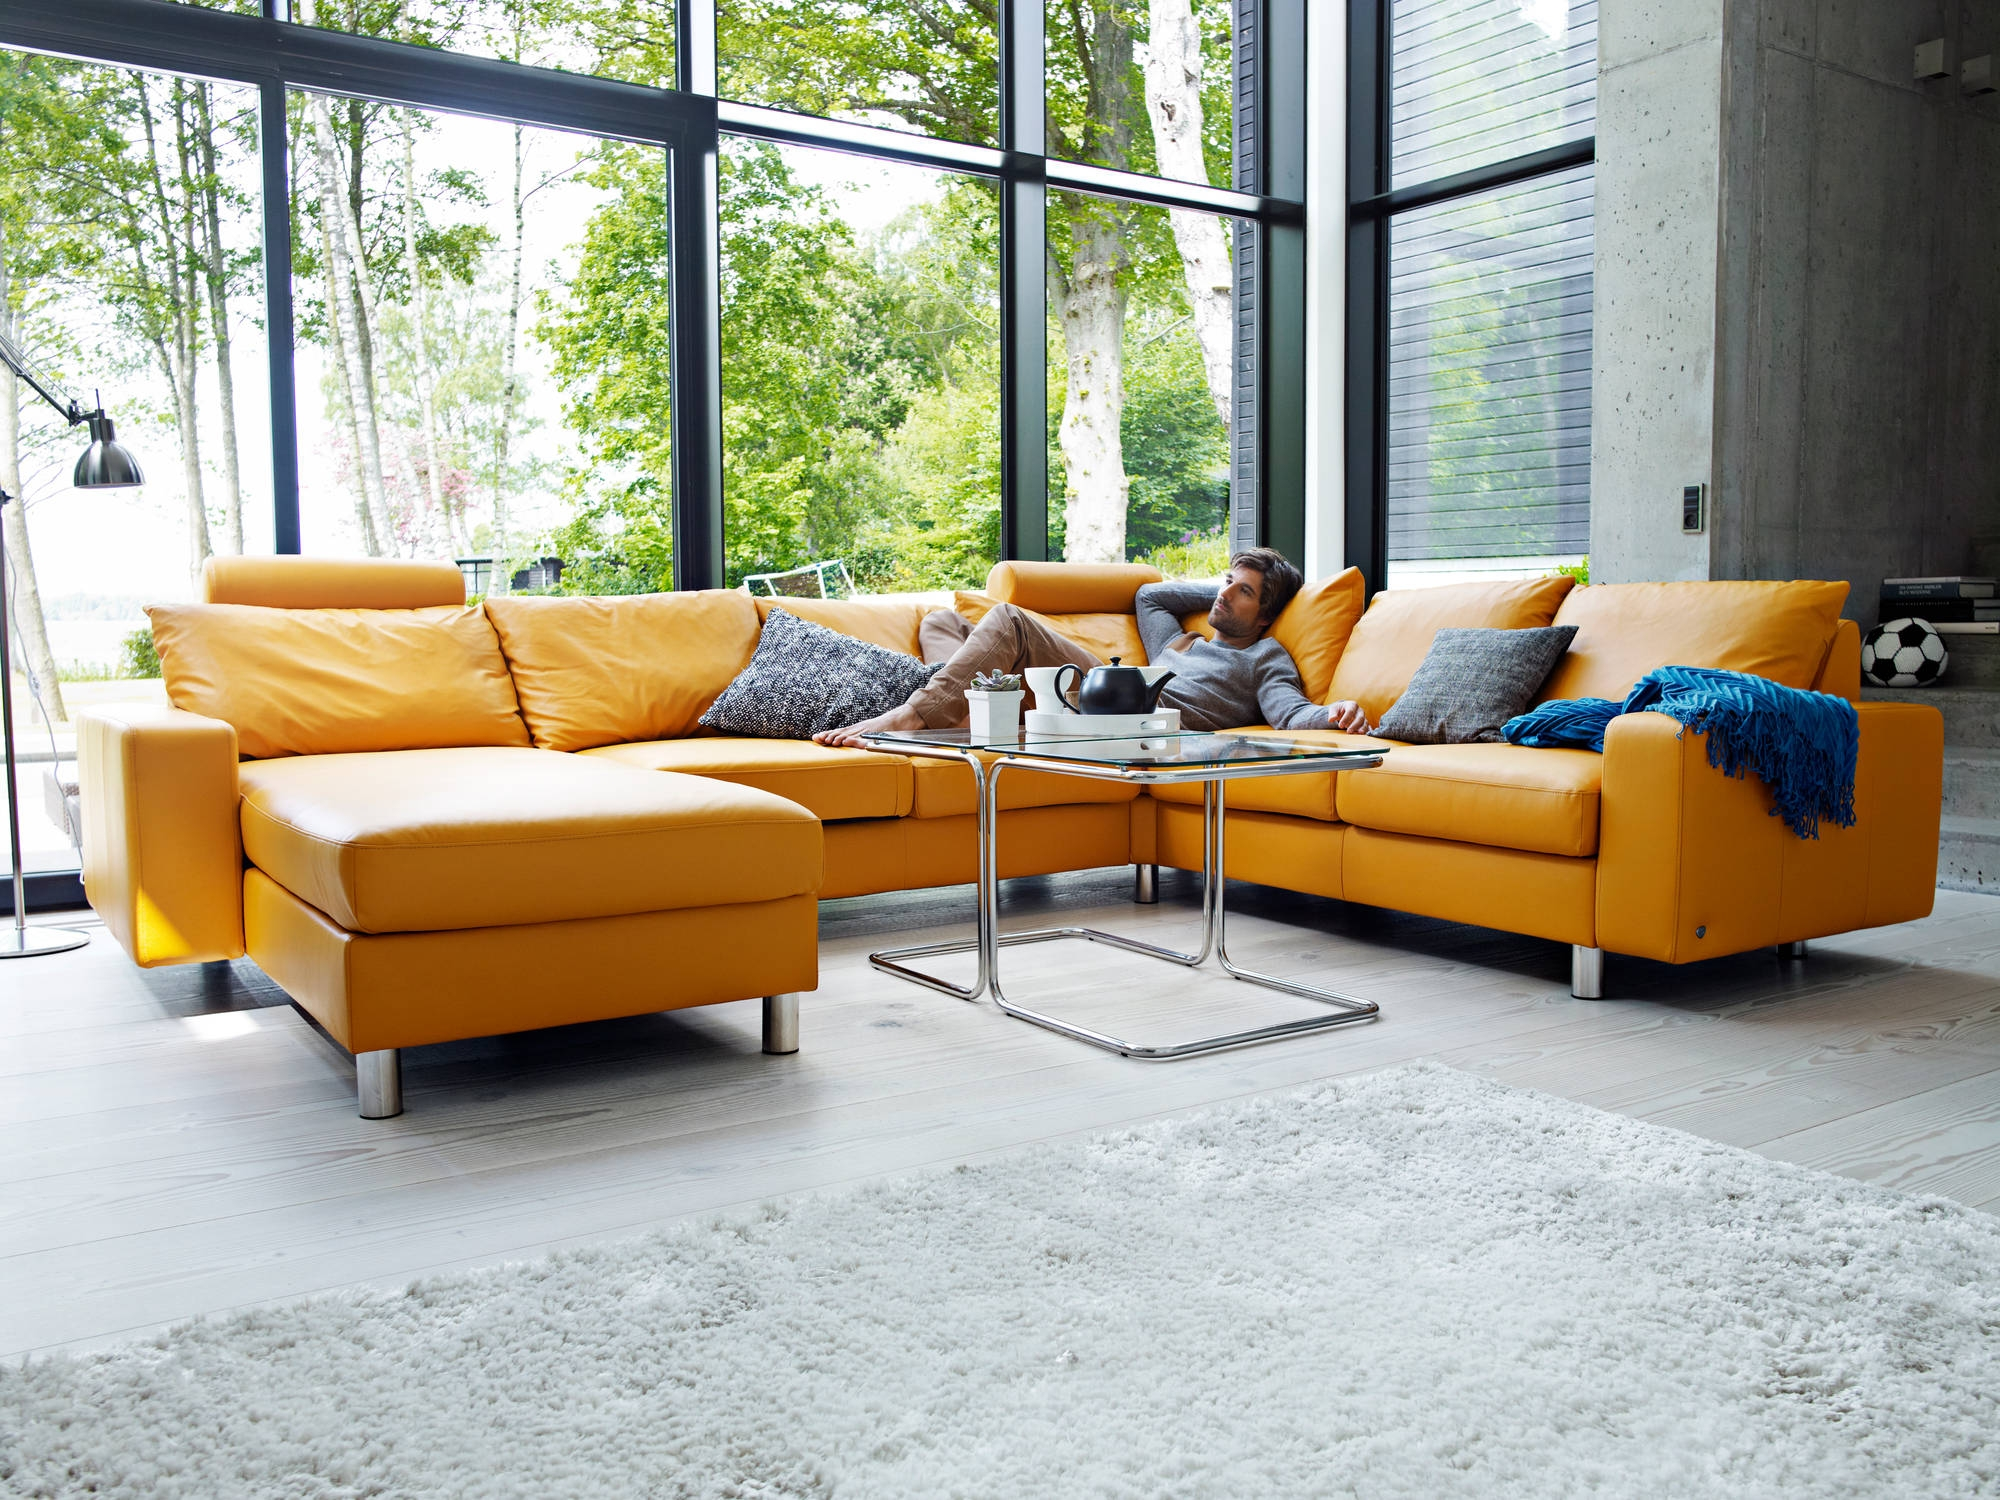 Home Theater Seating And Sectionals Stressless Unwind In Ekornes Sectional Sofa (Image 11 of 15)